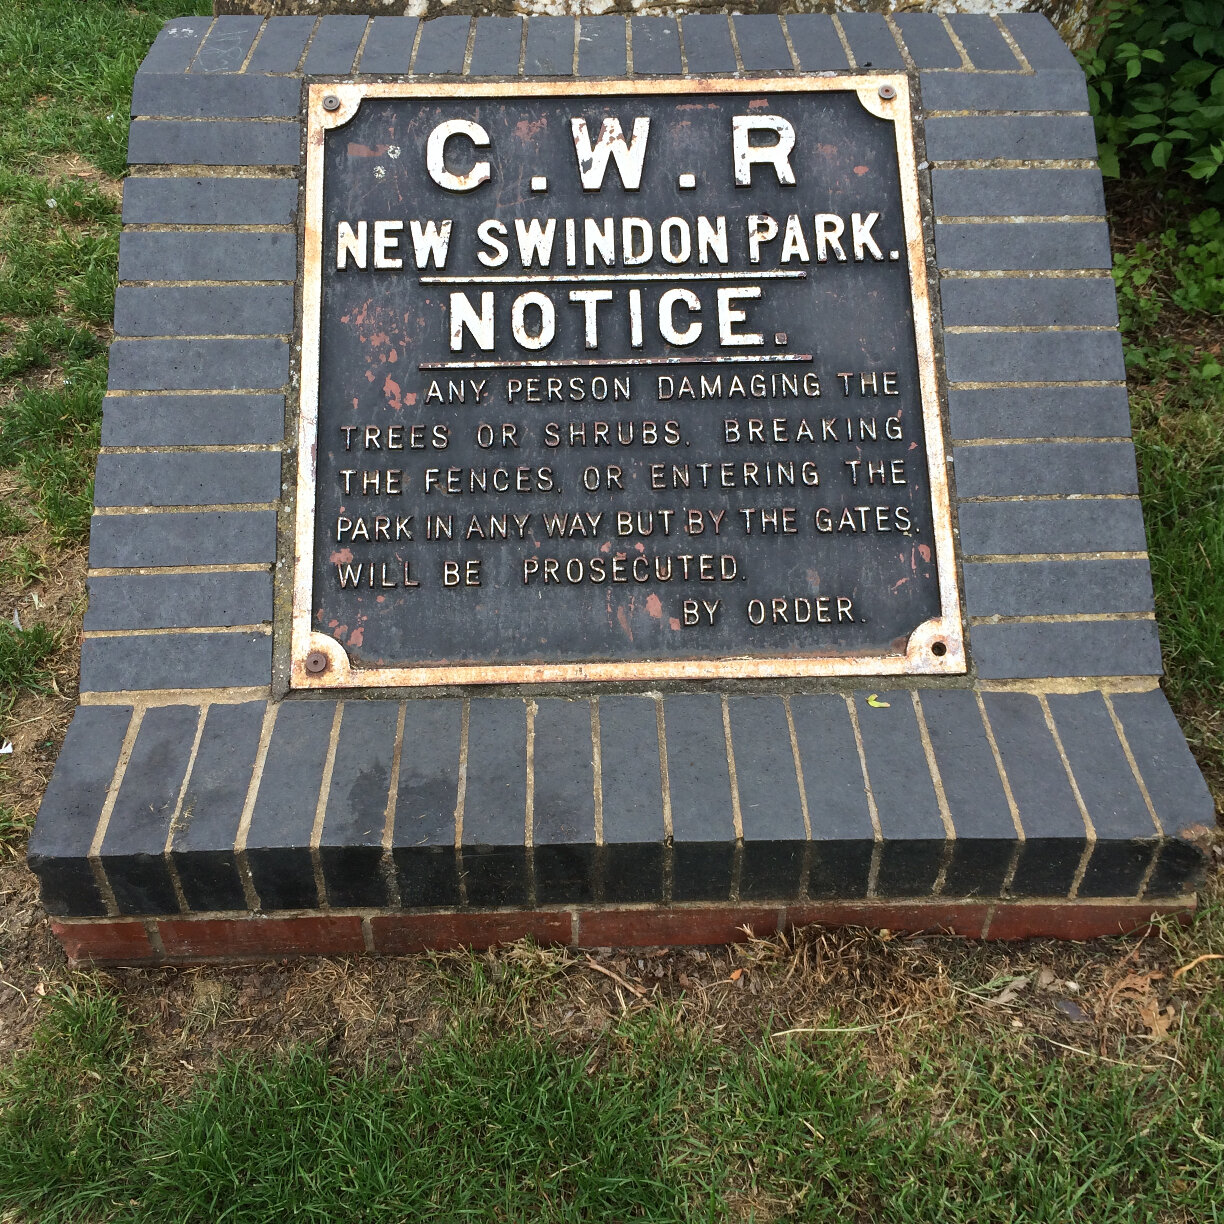 SwindonGreatWar (3)